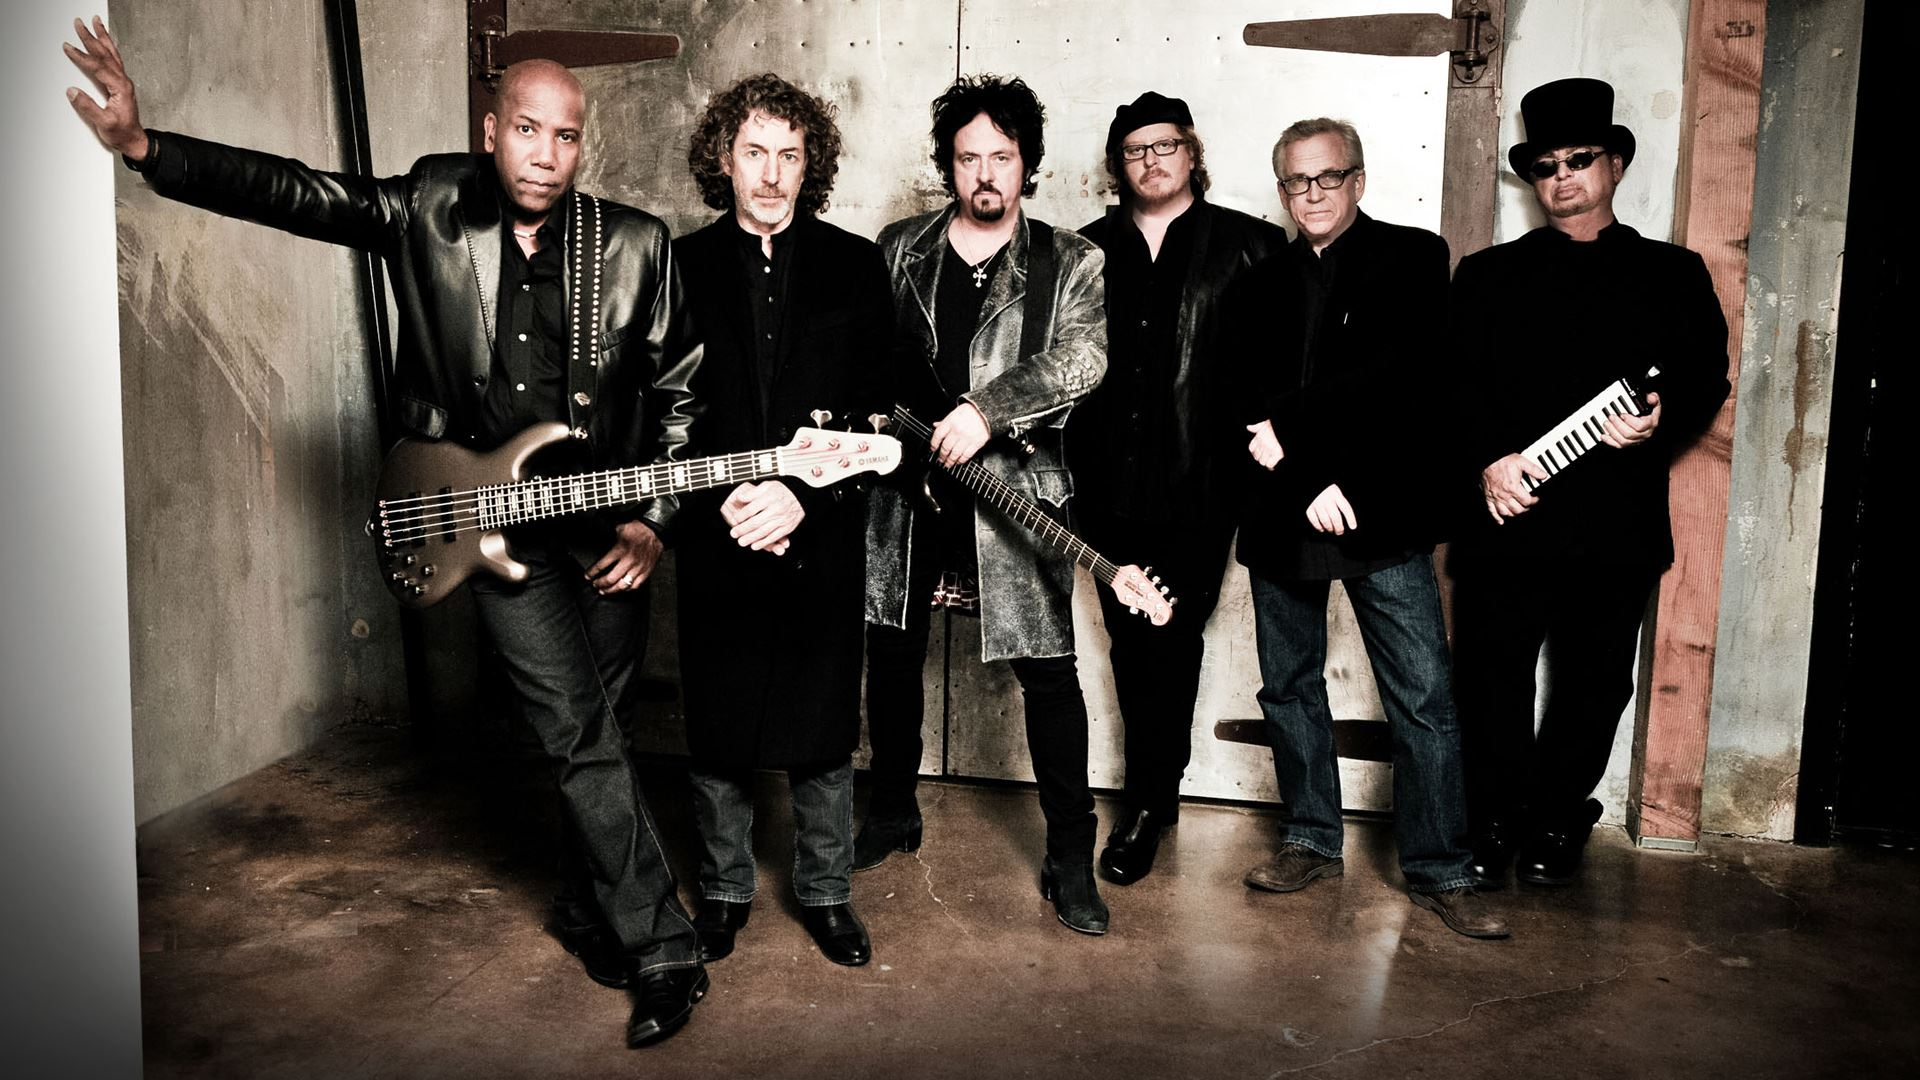 Toto Promotional Photo